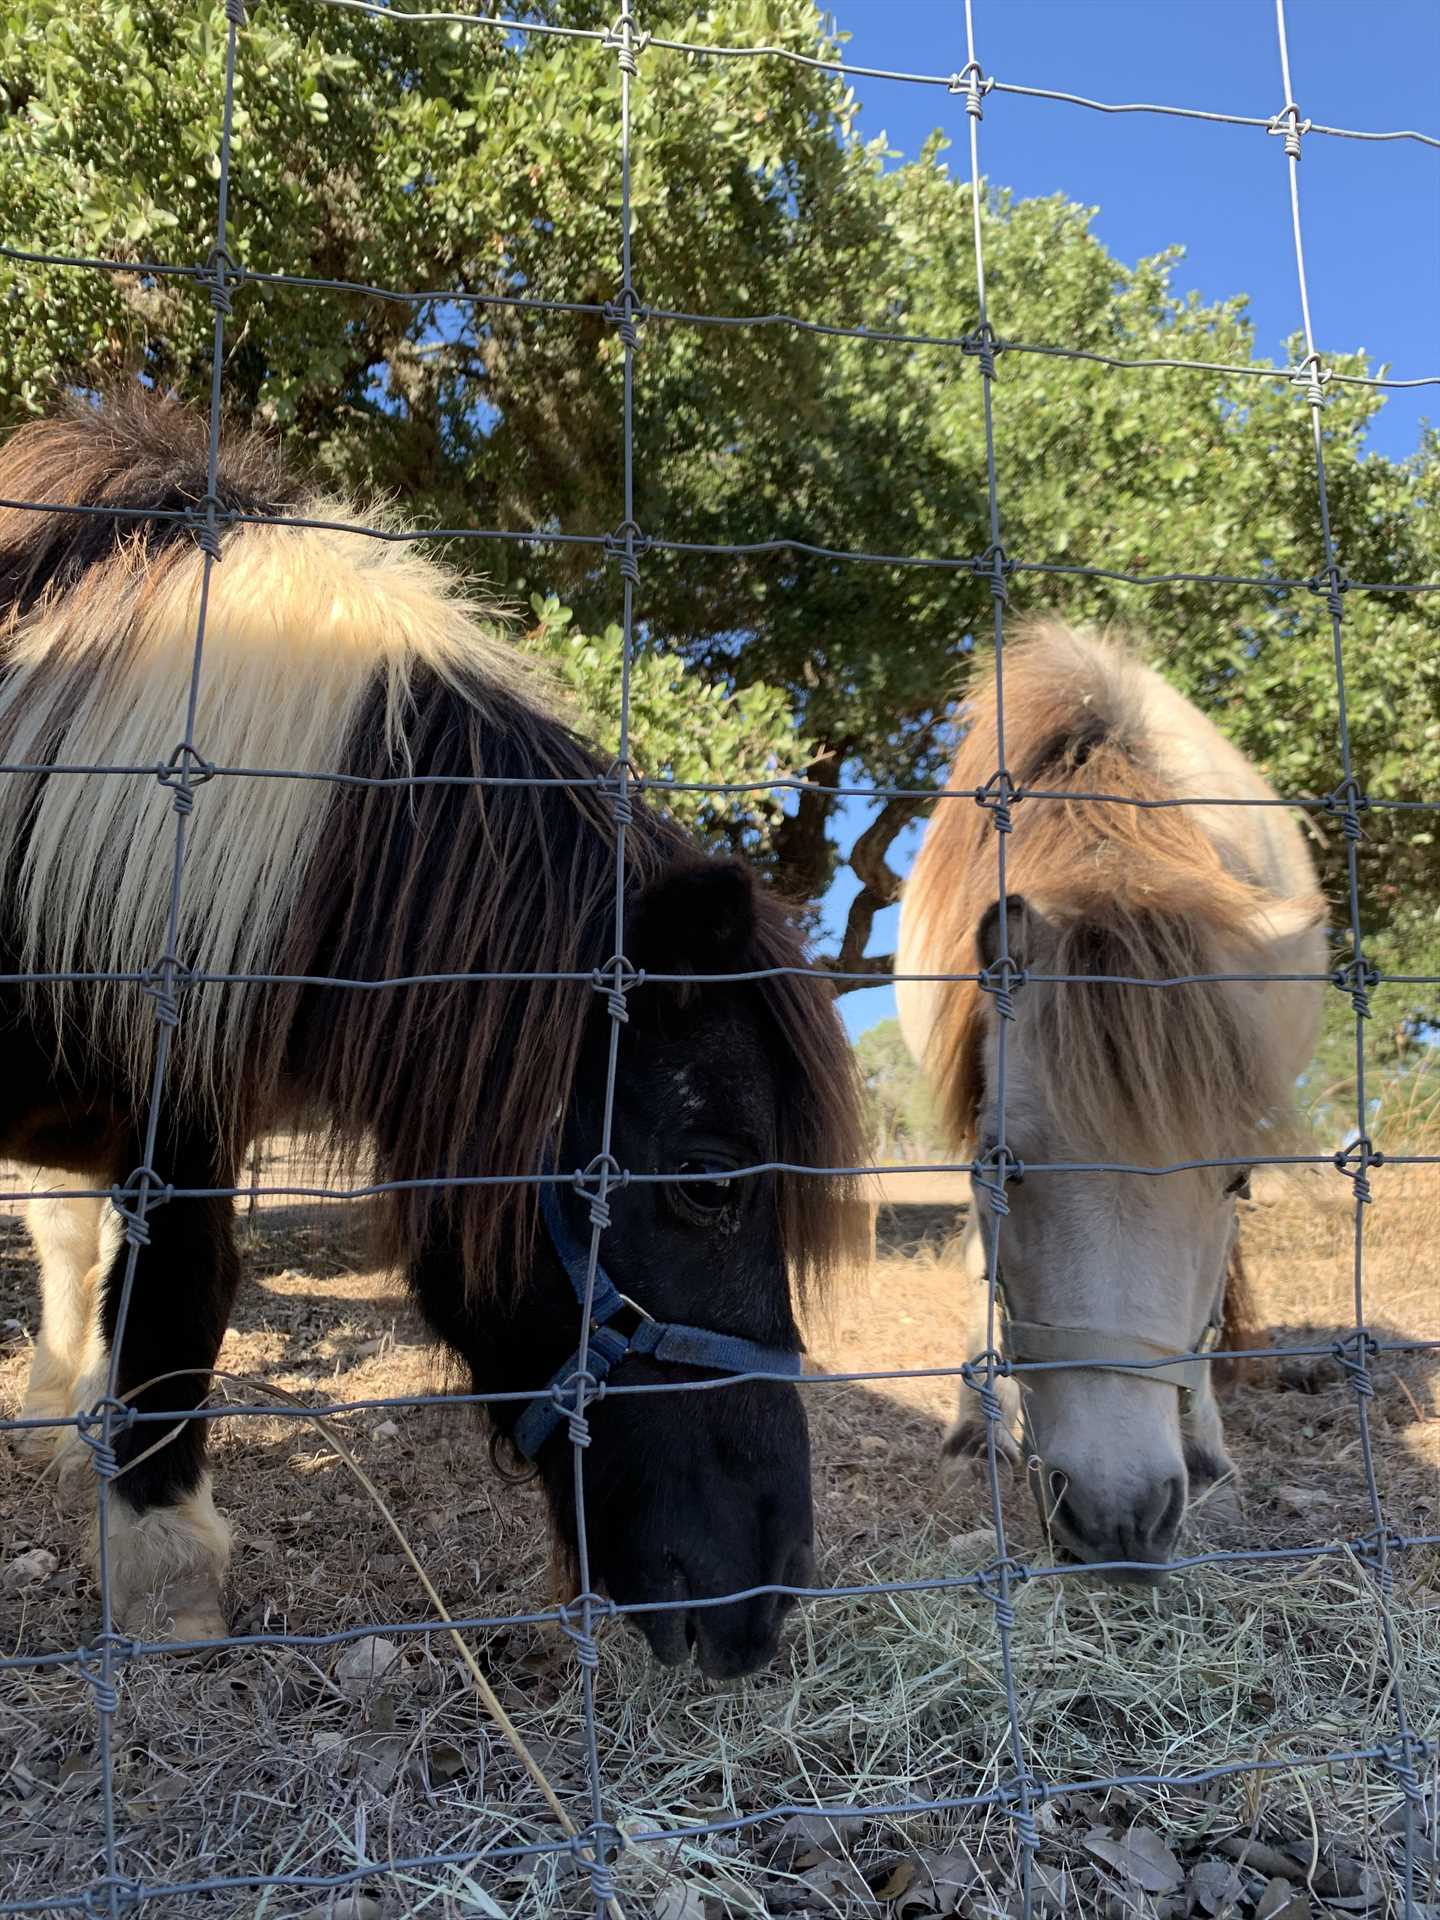 Buttercup and Jelly Bean are two of the equine mascots here at Tabasco Ranch.